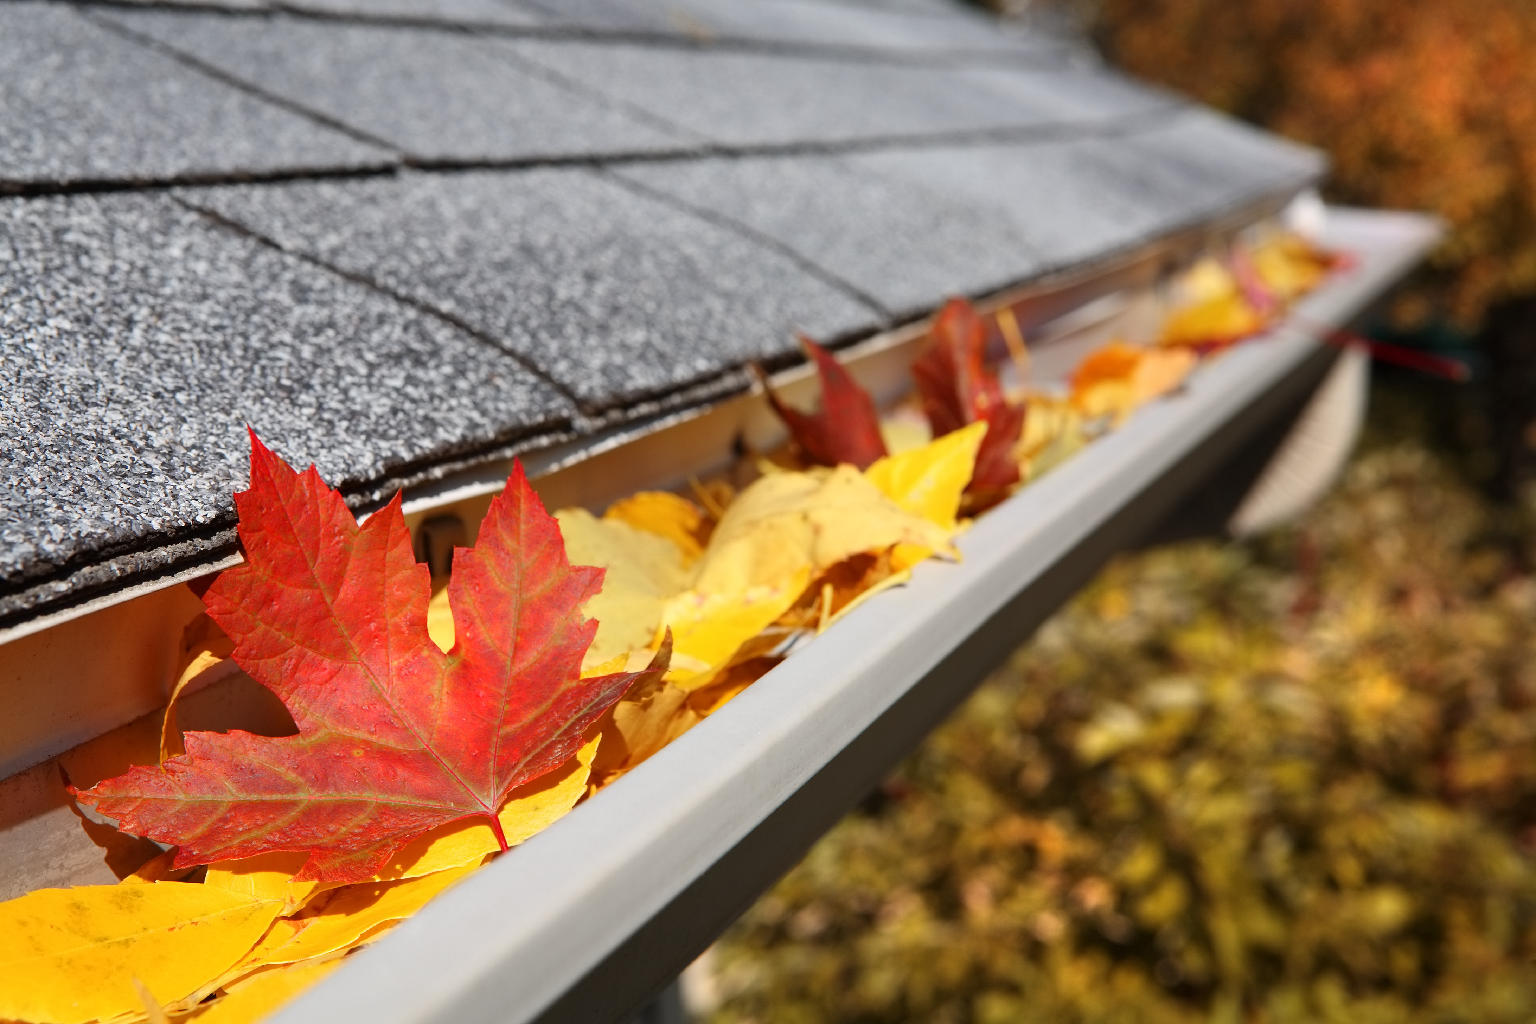 Gutter Maintenance Services in Sutton Coldfield, Great Barr and Birmingham